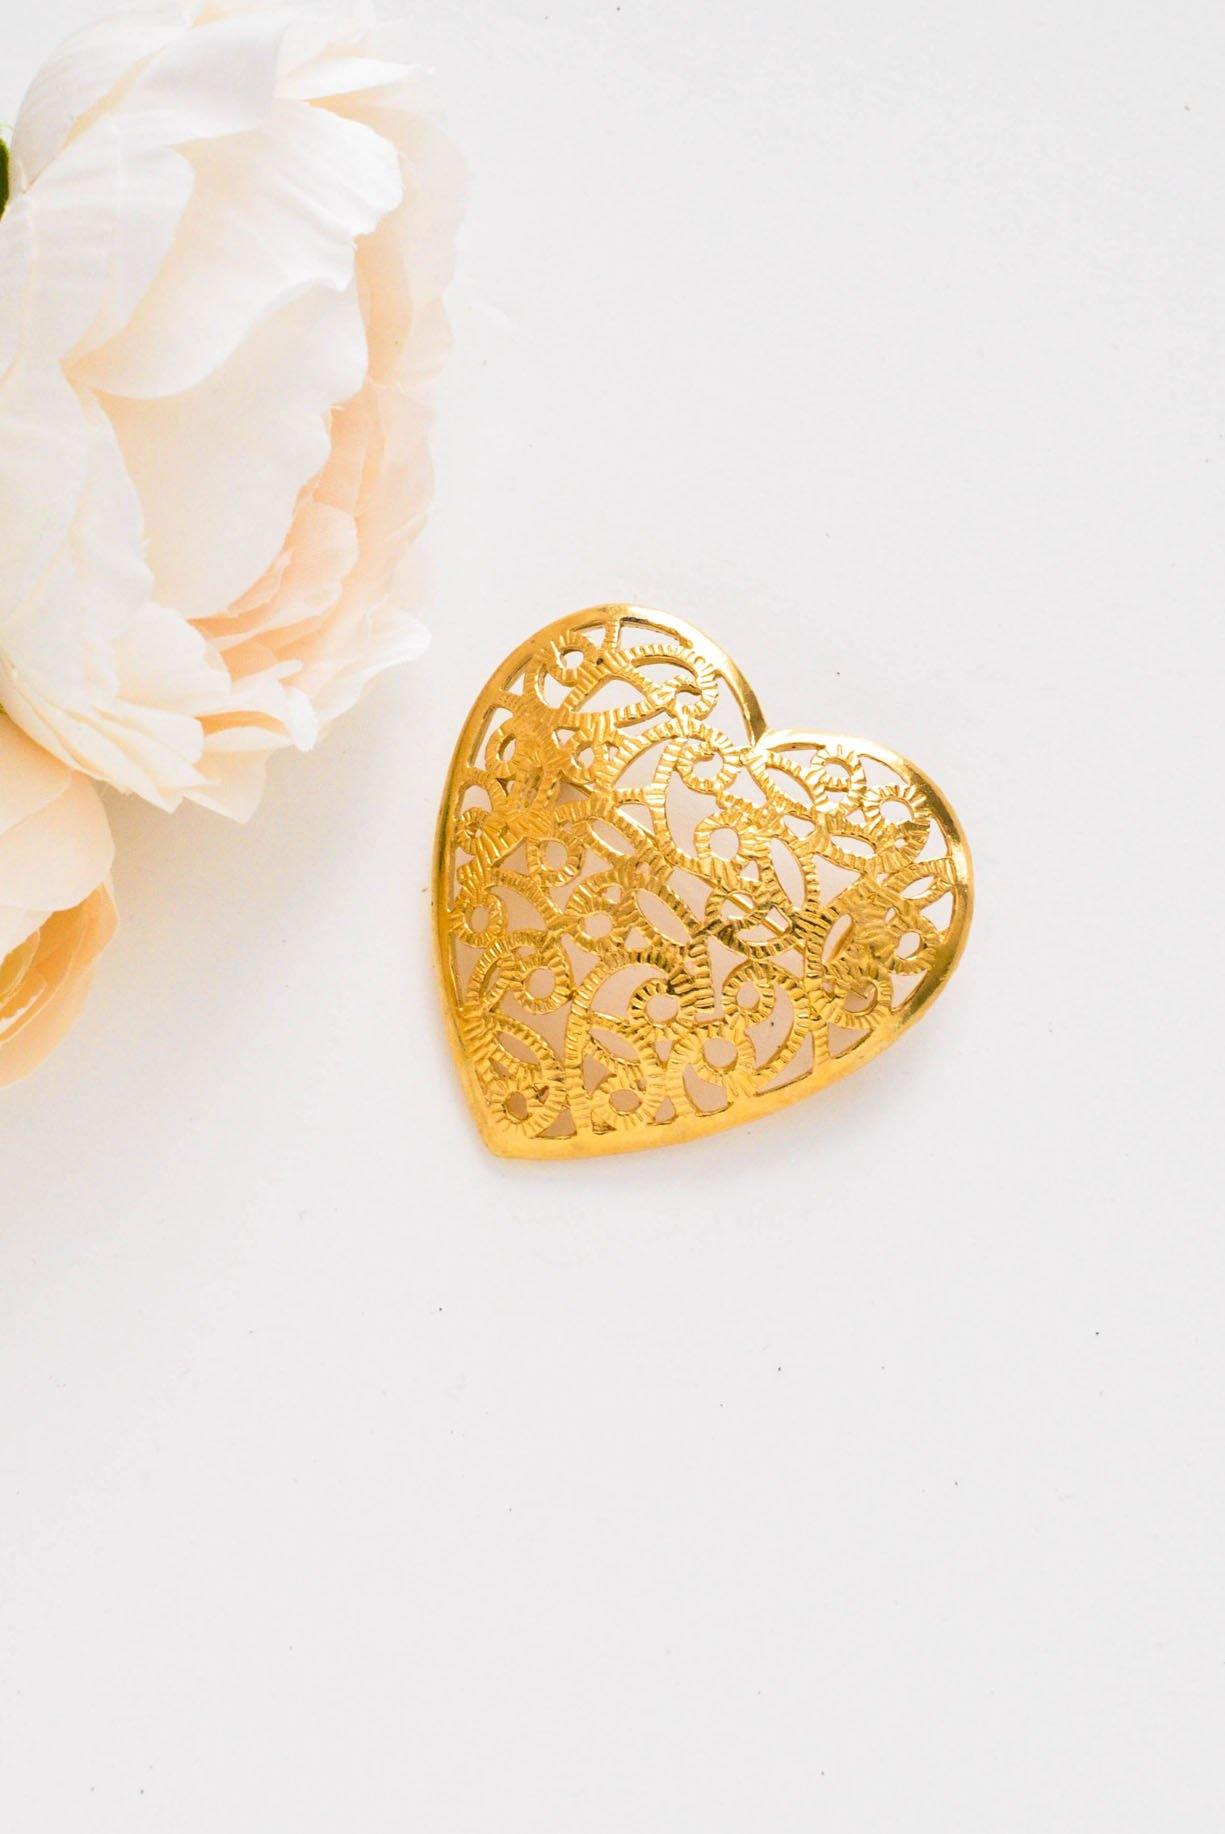 Swirled Heart Brooch from Sweet & Spark